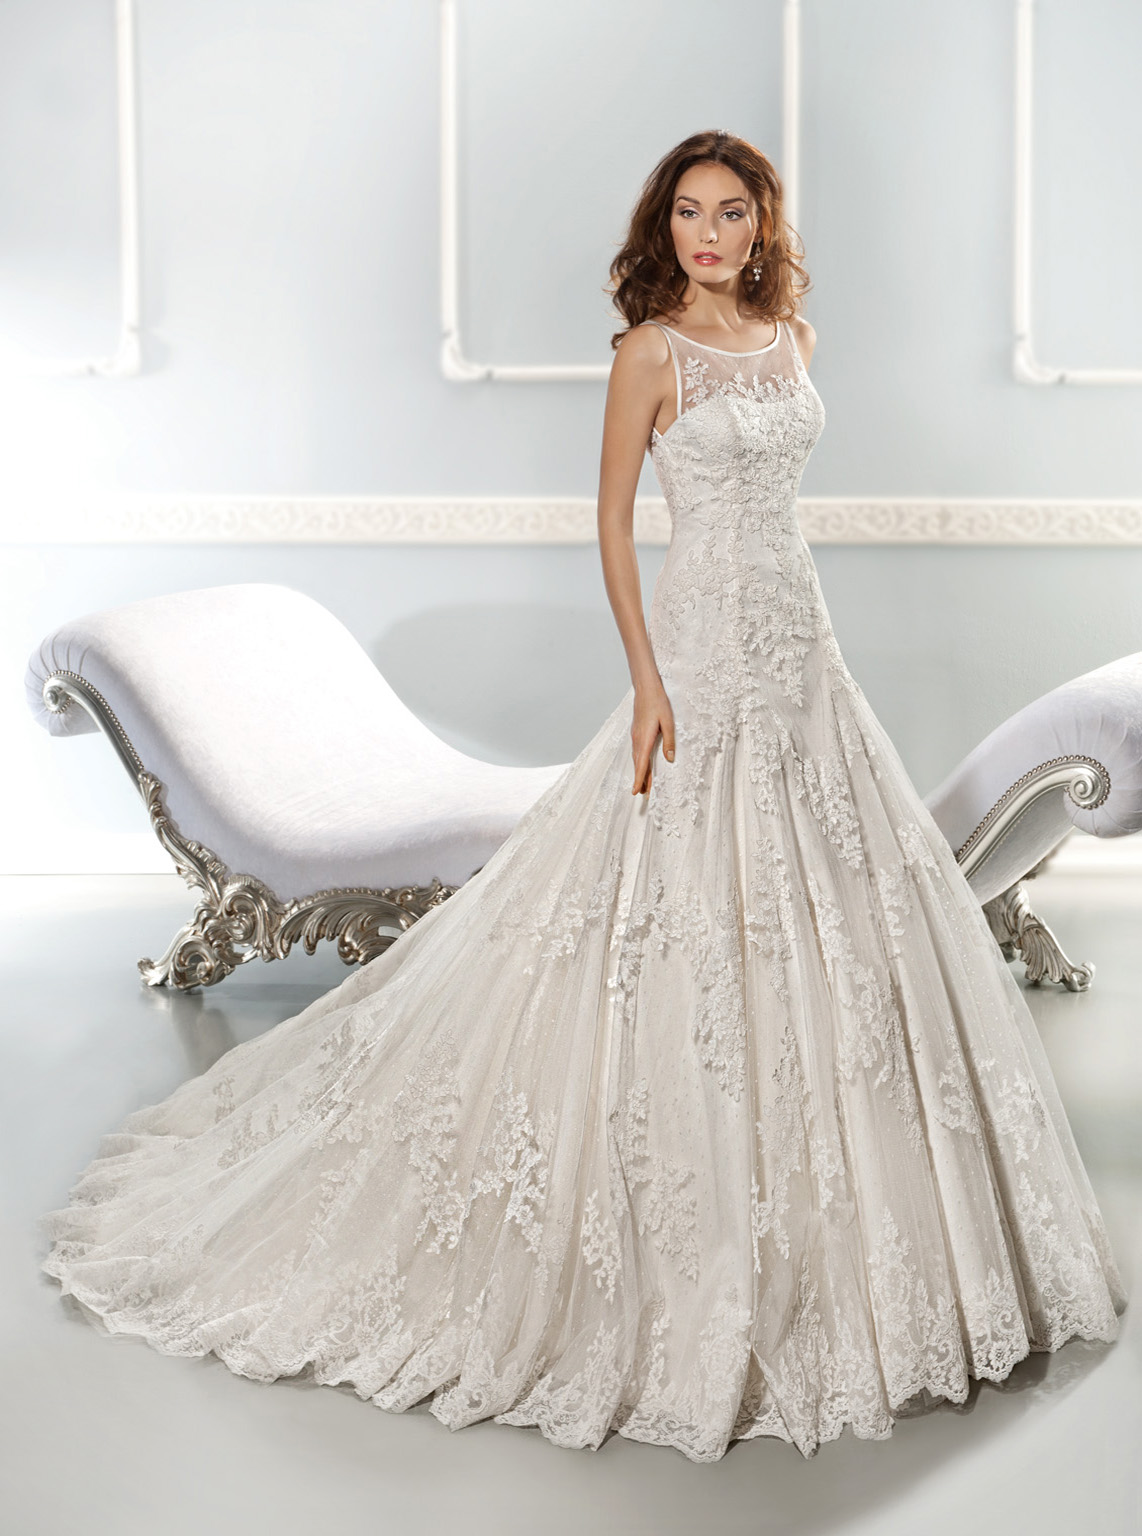 Exquisite A-line Bateau Illsuion Neck Lace Overlay Tulle Chapel Train Wedding Dress